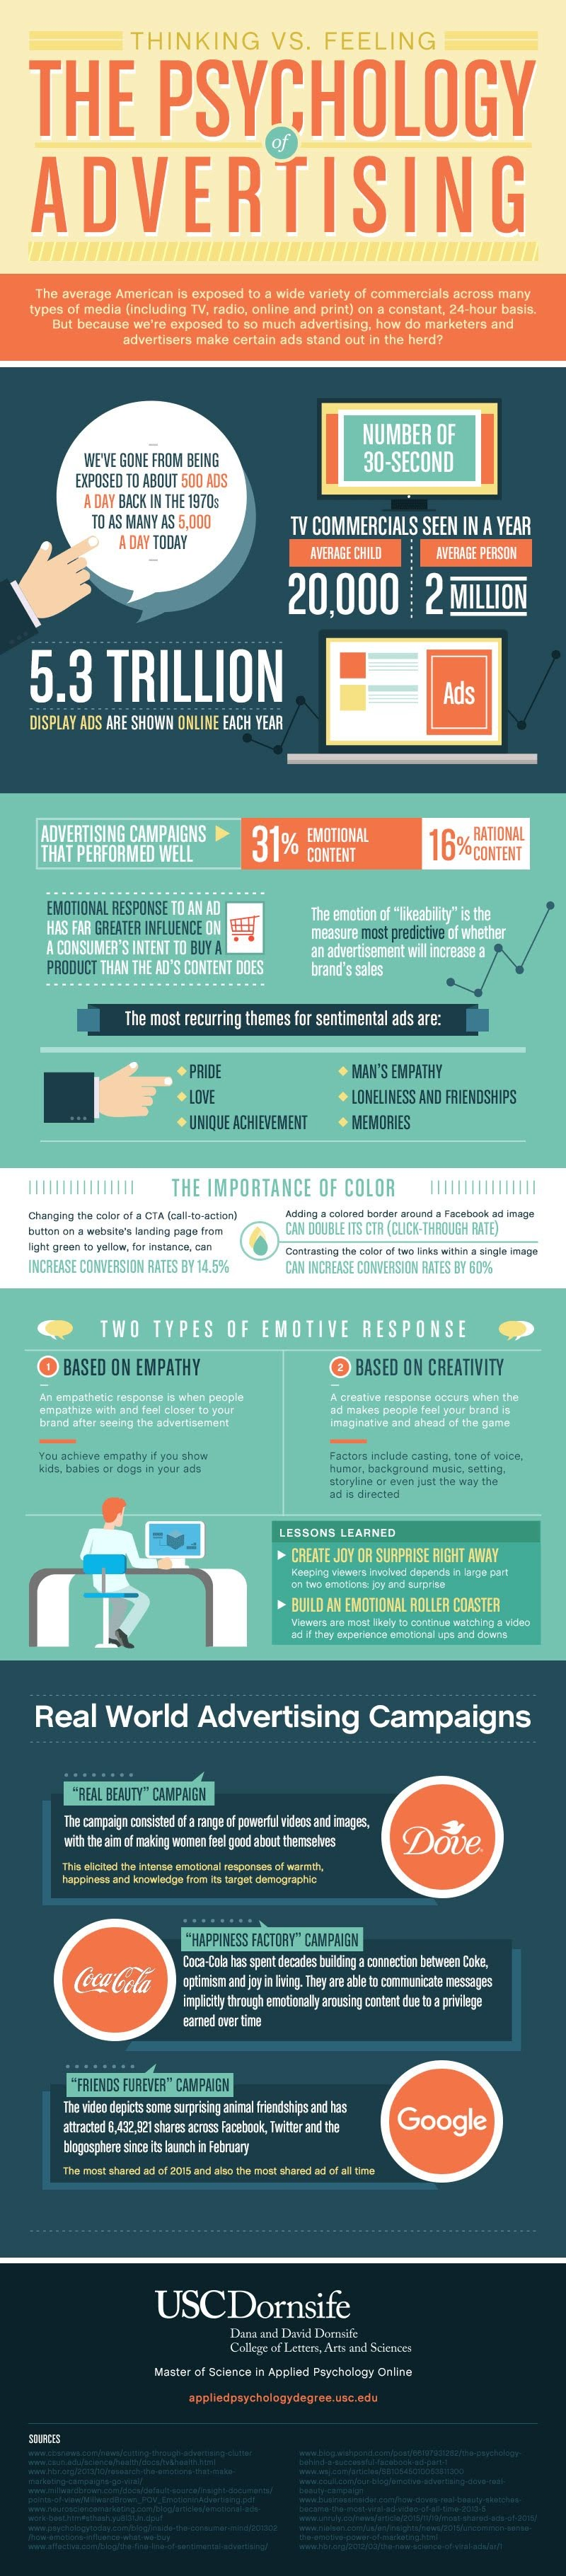 Thinking vs Feeling: The Psychology of Advertising [Infographic]